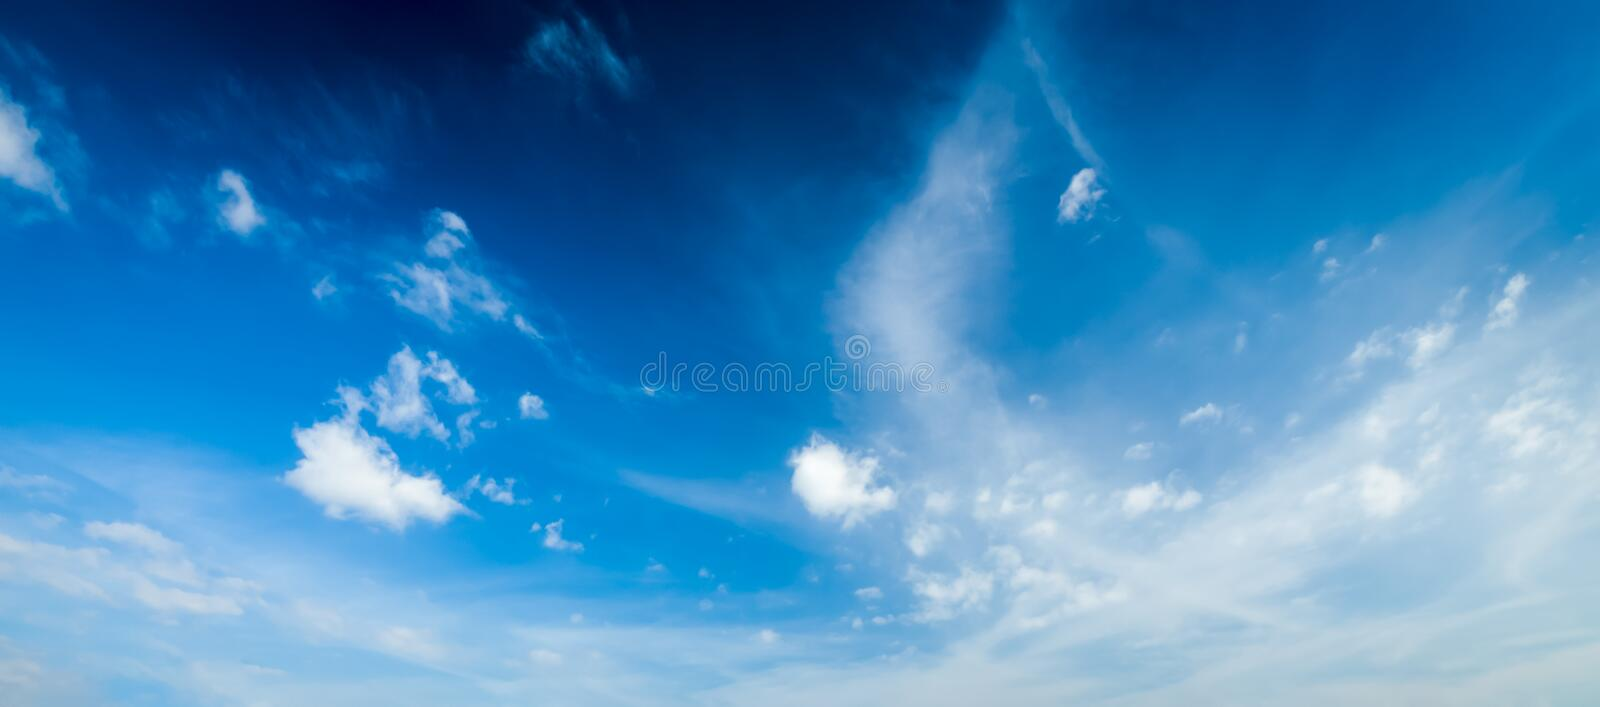 Blue sky with white clouds royalty free stock photos